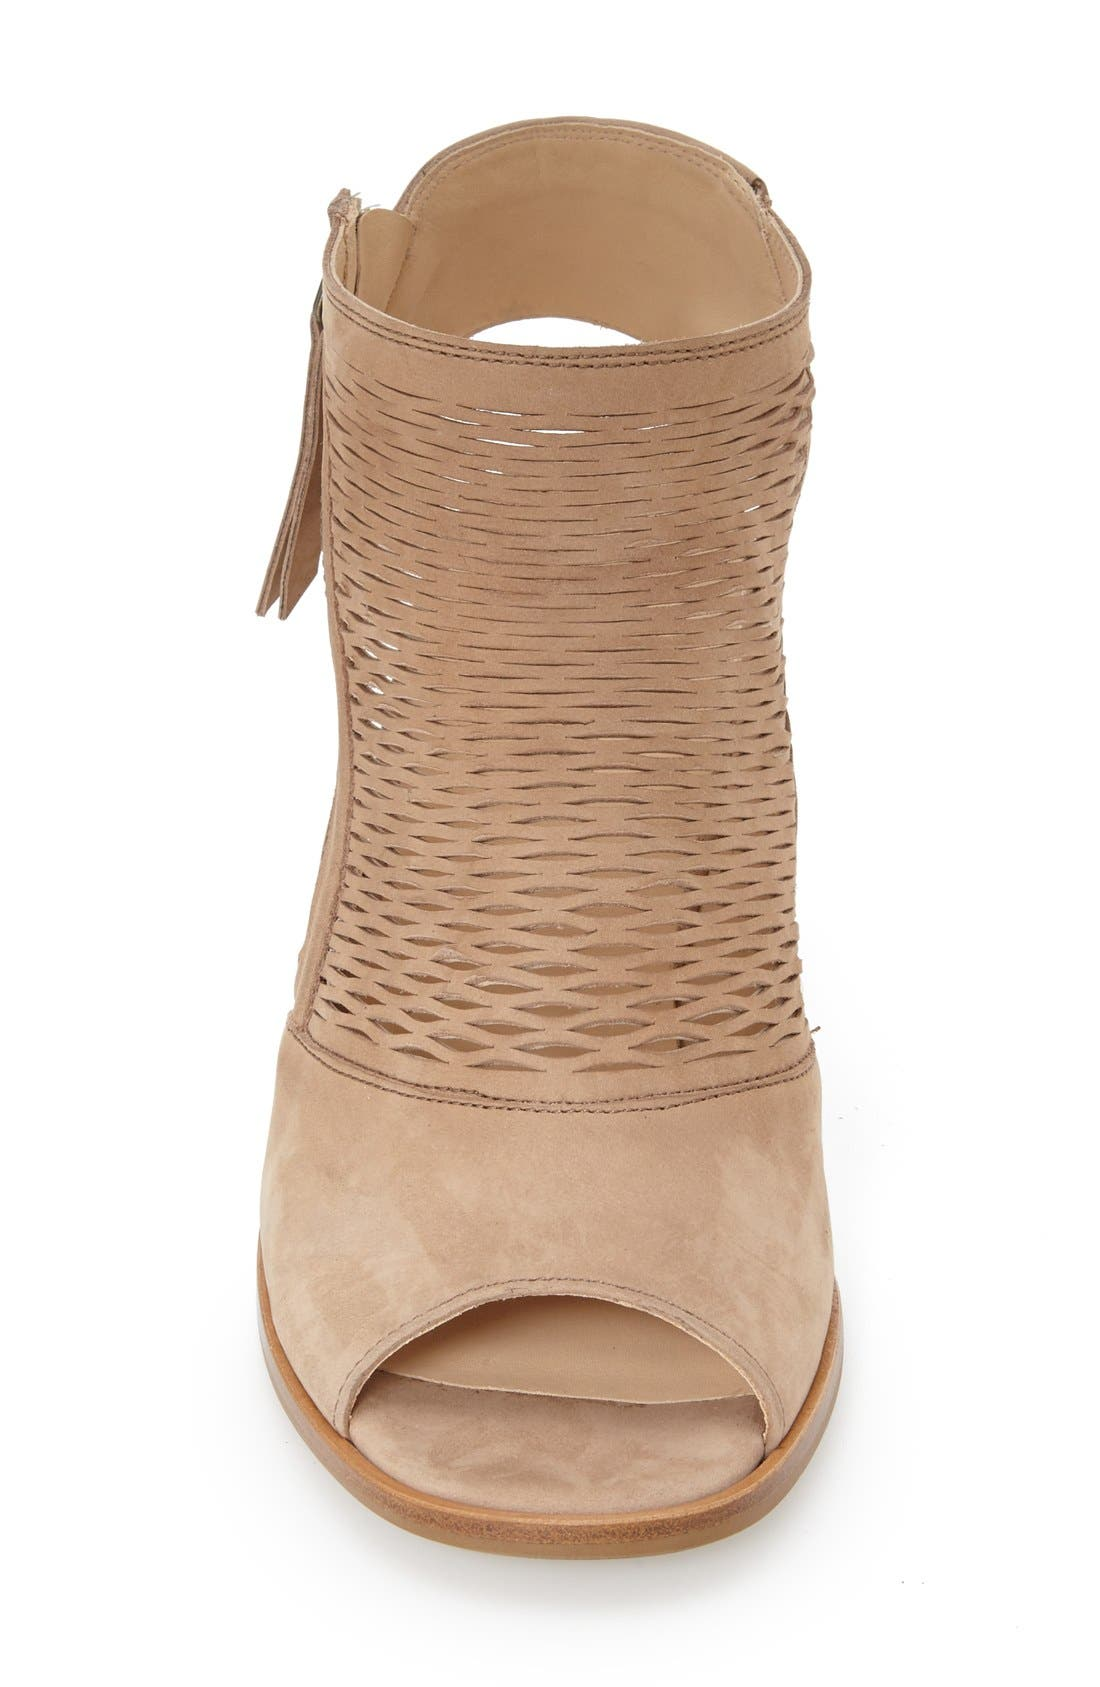 'Willow' Peep Toe Sandal,                             Alternate thumbnail 3, color,                             291